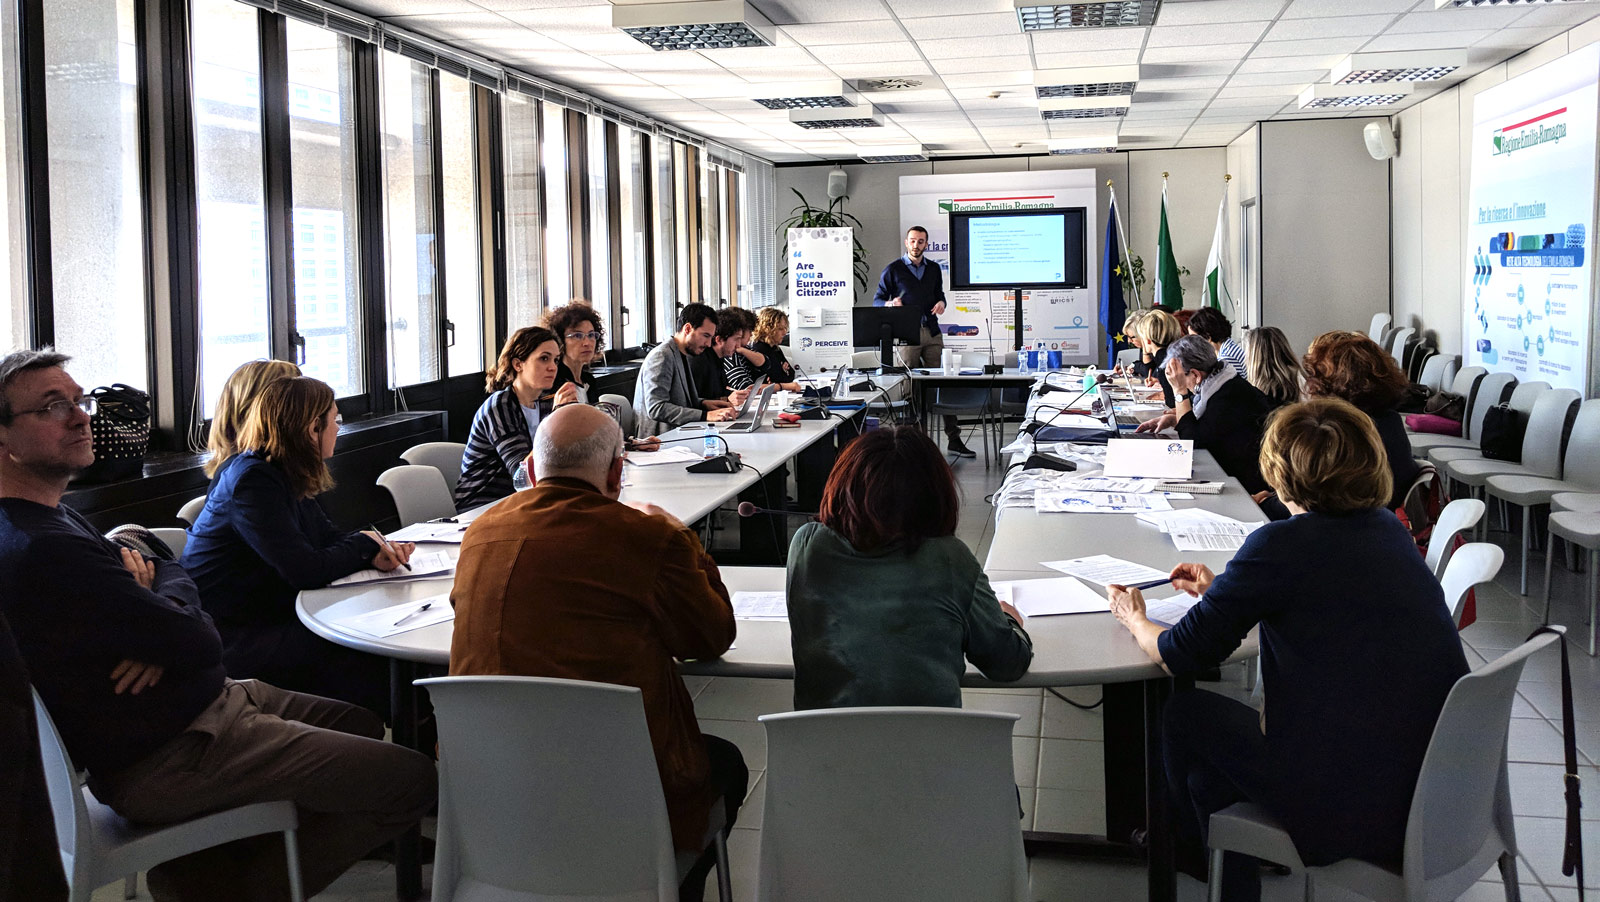 Our workshop with Emilia-Romagna Region: the challenges of communicating Cohesion Policy